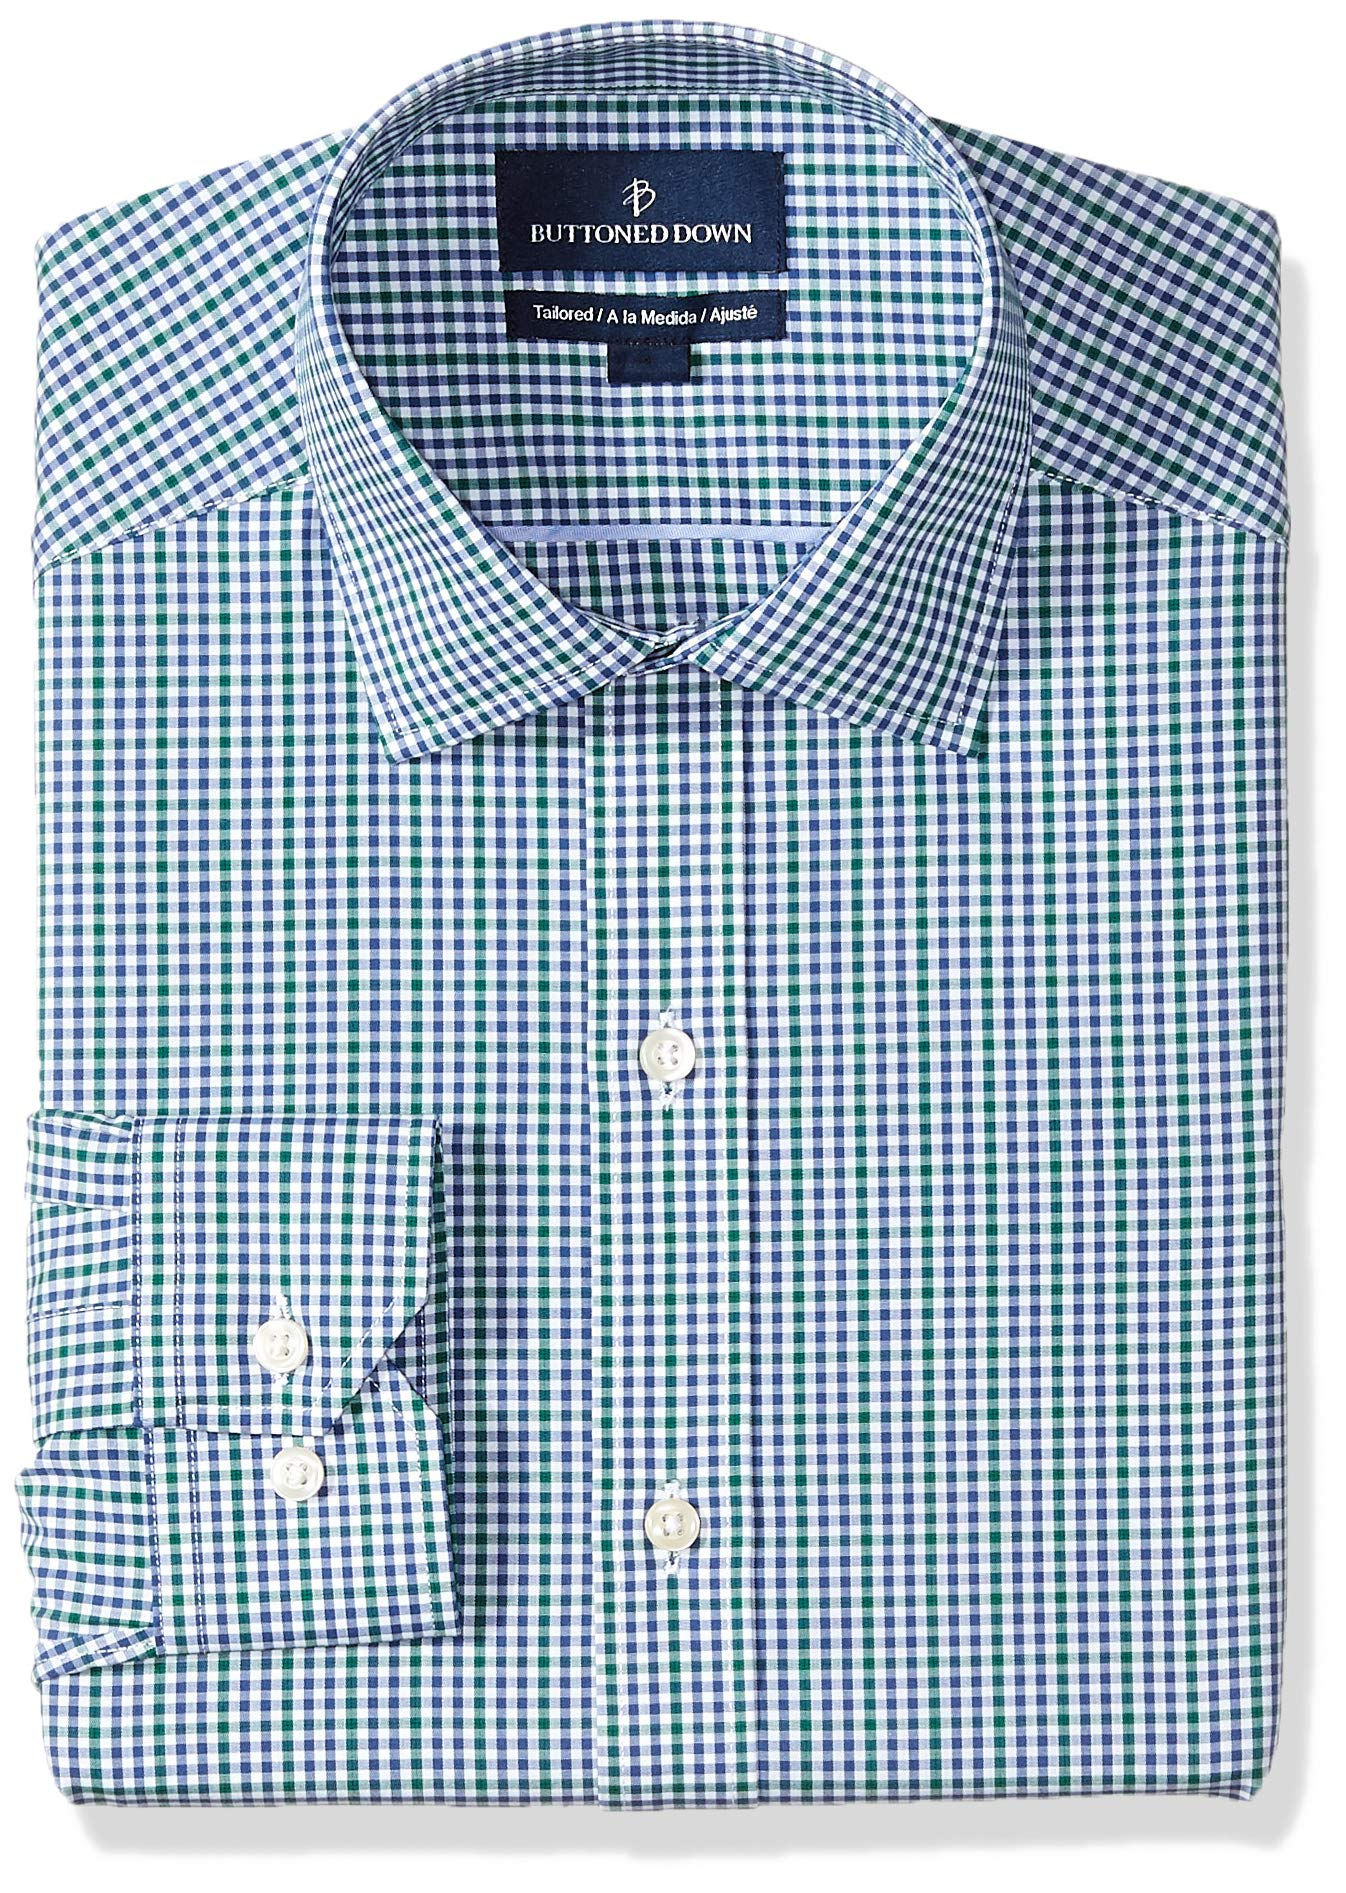 Amazon Brand - BUTTONED DOWN Men's Tailored Fit Gingham Dress Shirt, Supima Cotton Non-Iron